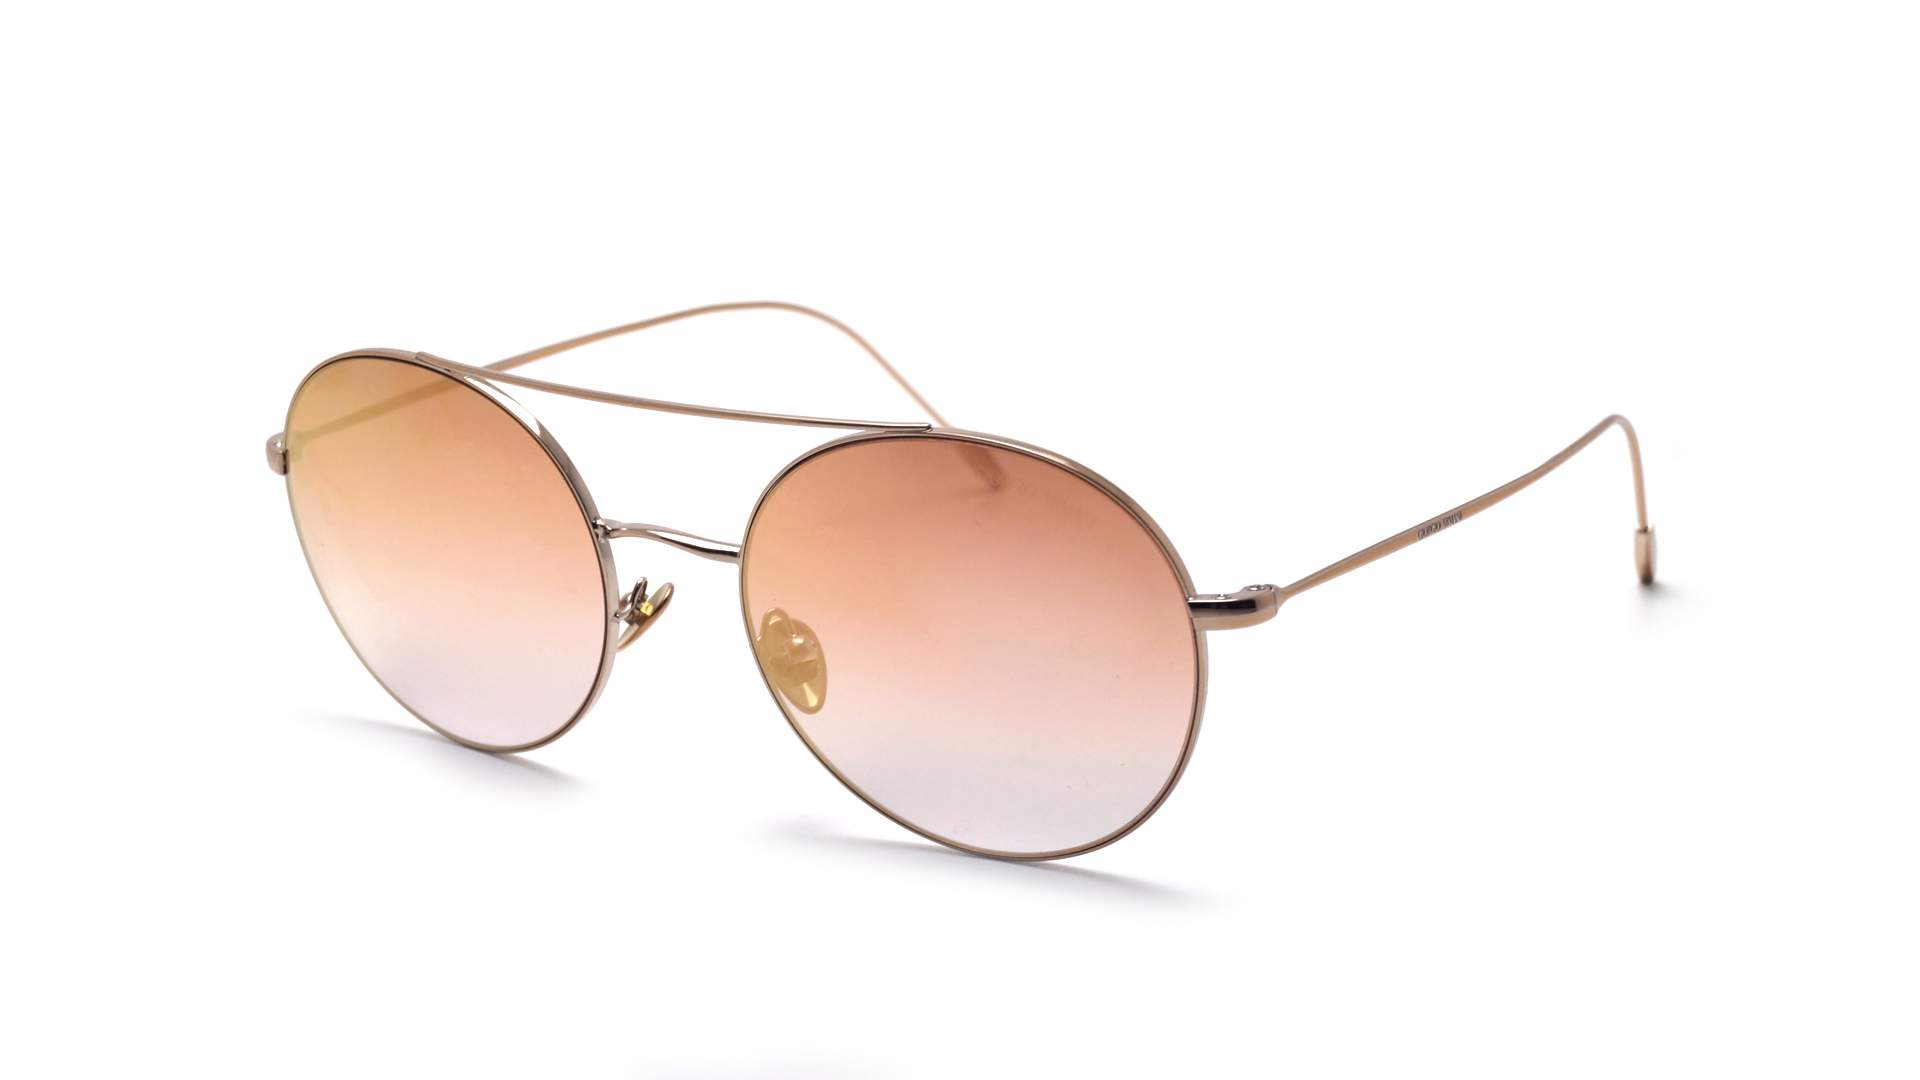 822034f667f4 Sunglasses Giorgio Armani Frames Of Life Gold AR6050 3011 6F 54-19 Large  Gradient Mirror